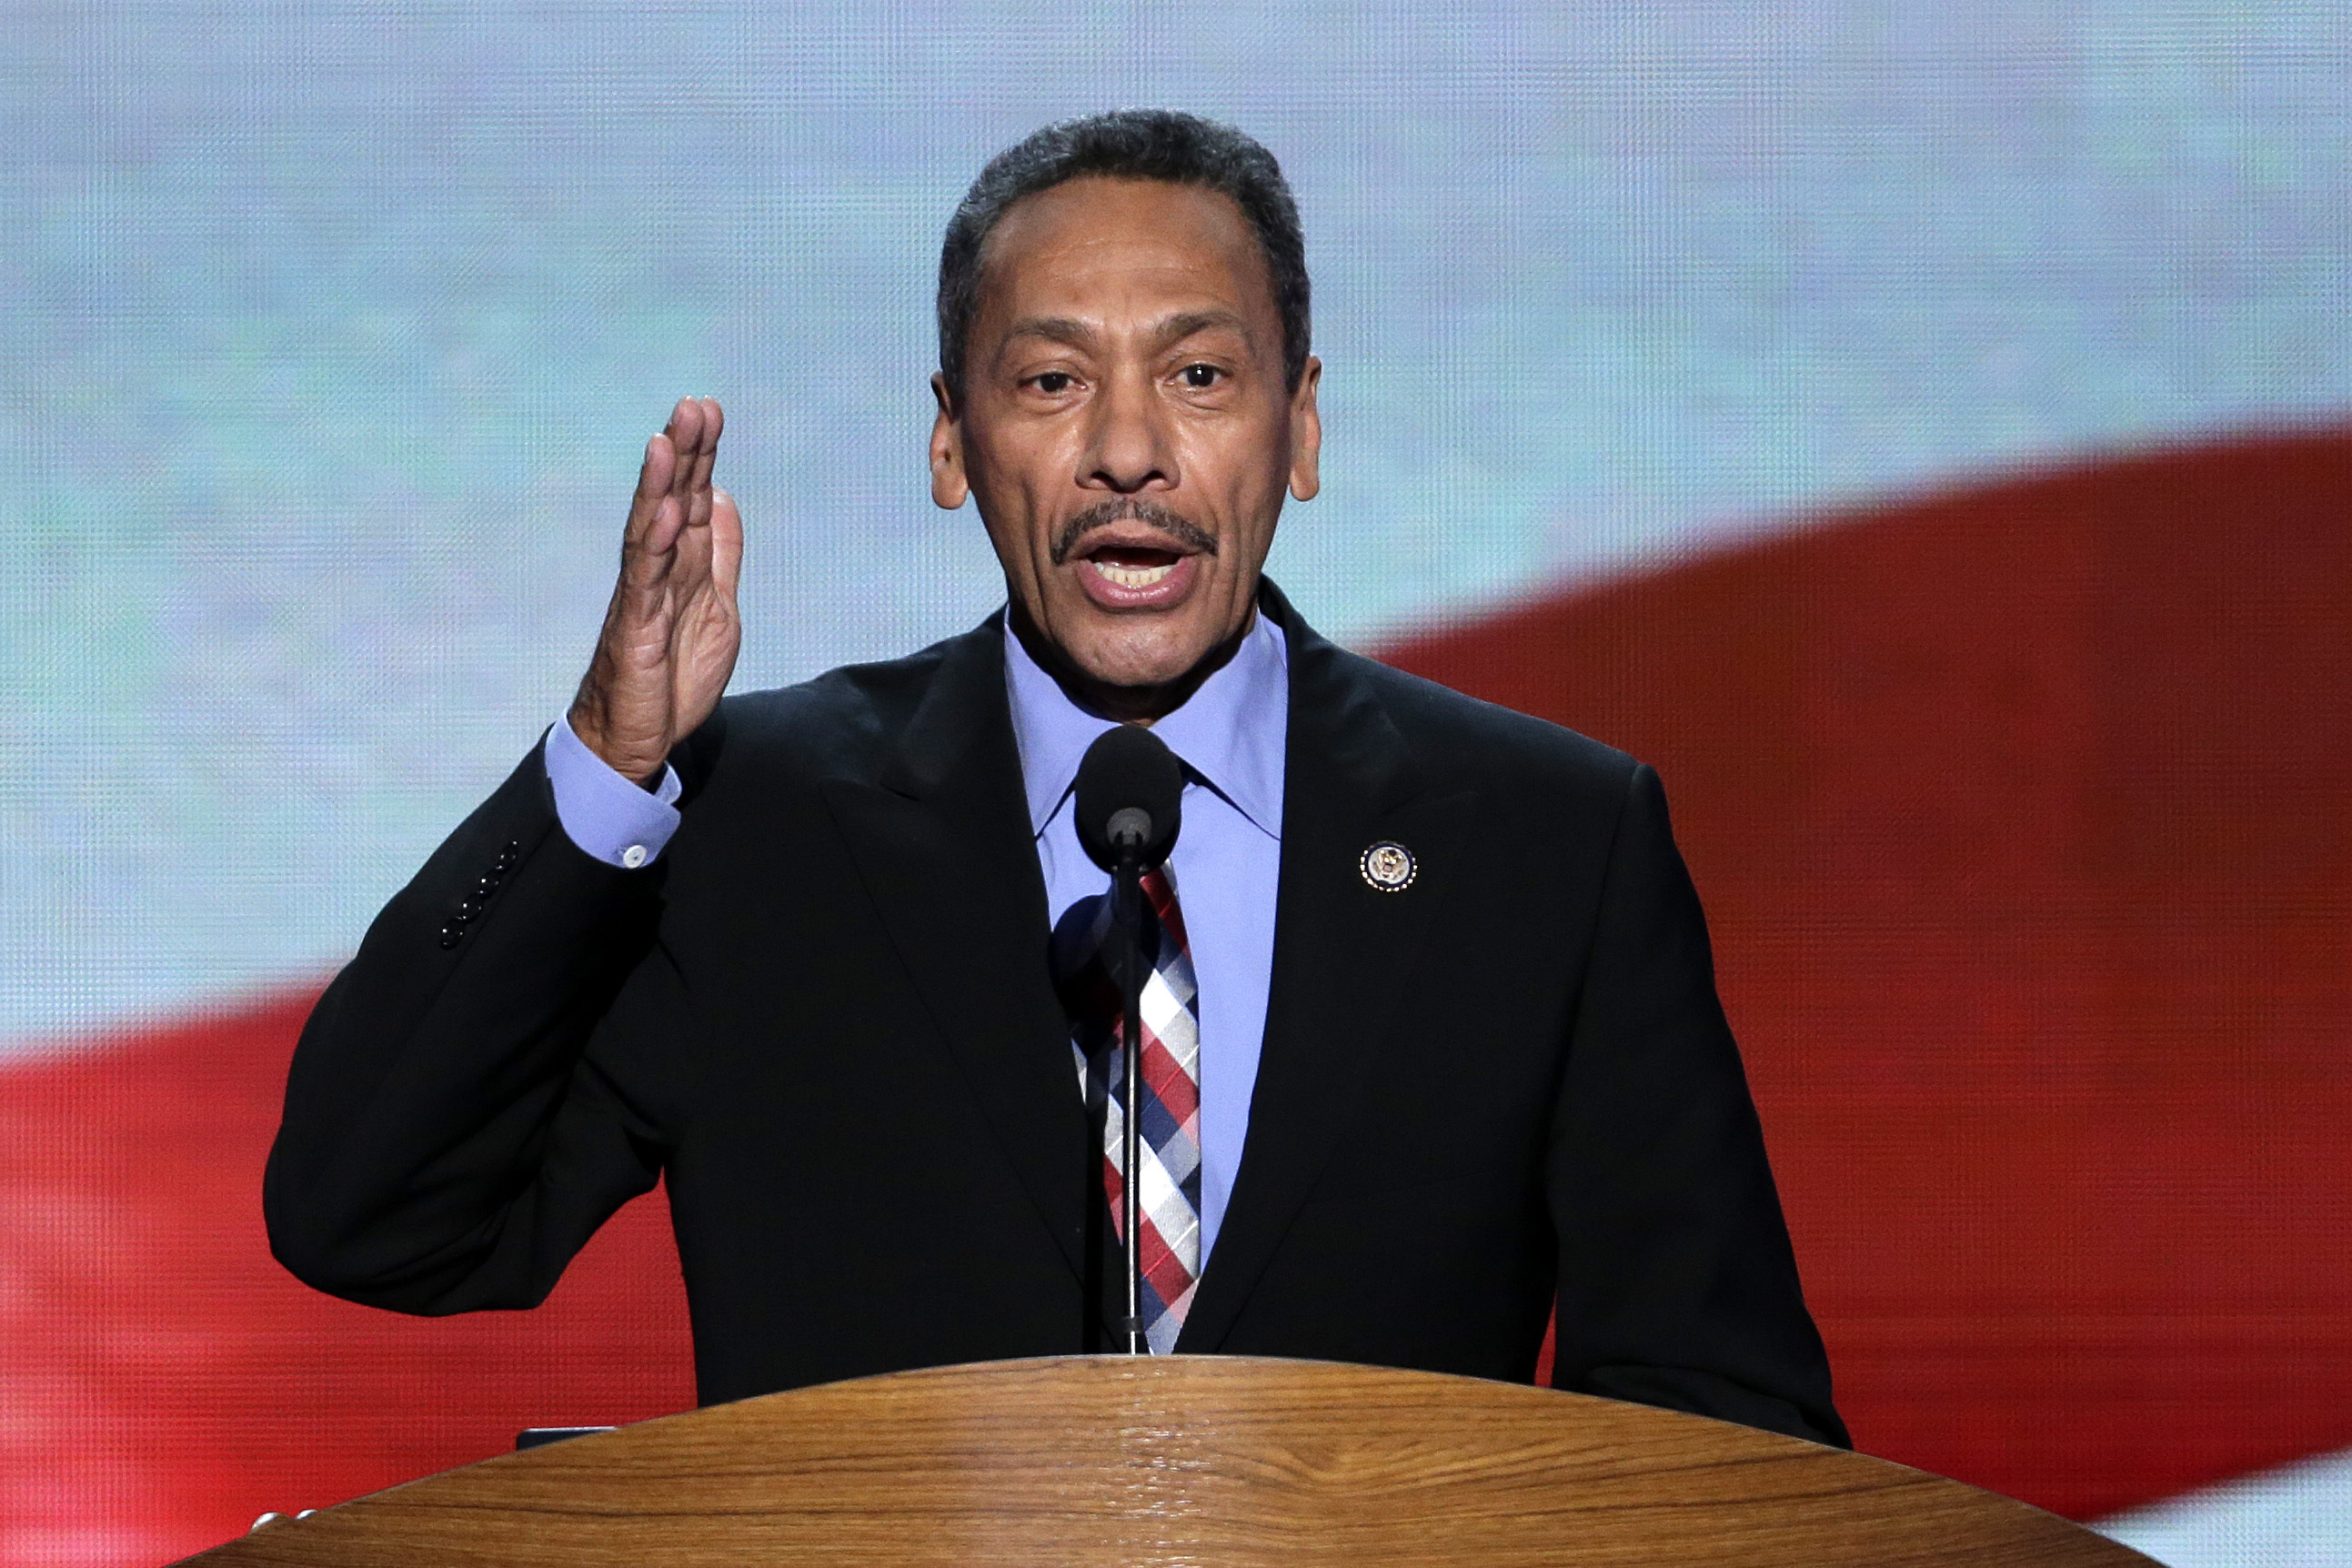 Mel Watt attempted to 'coerce' relationship with employee